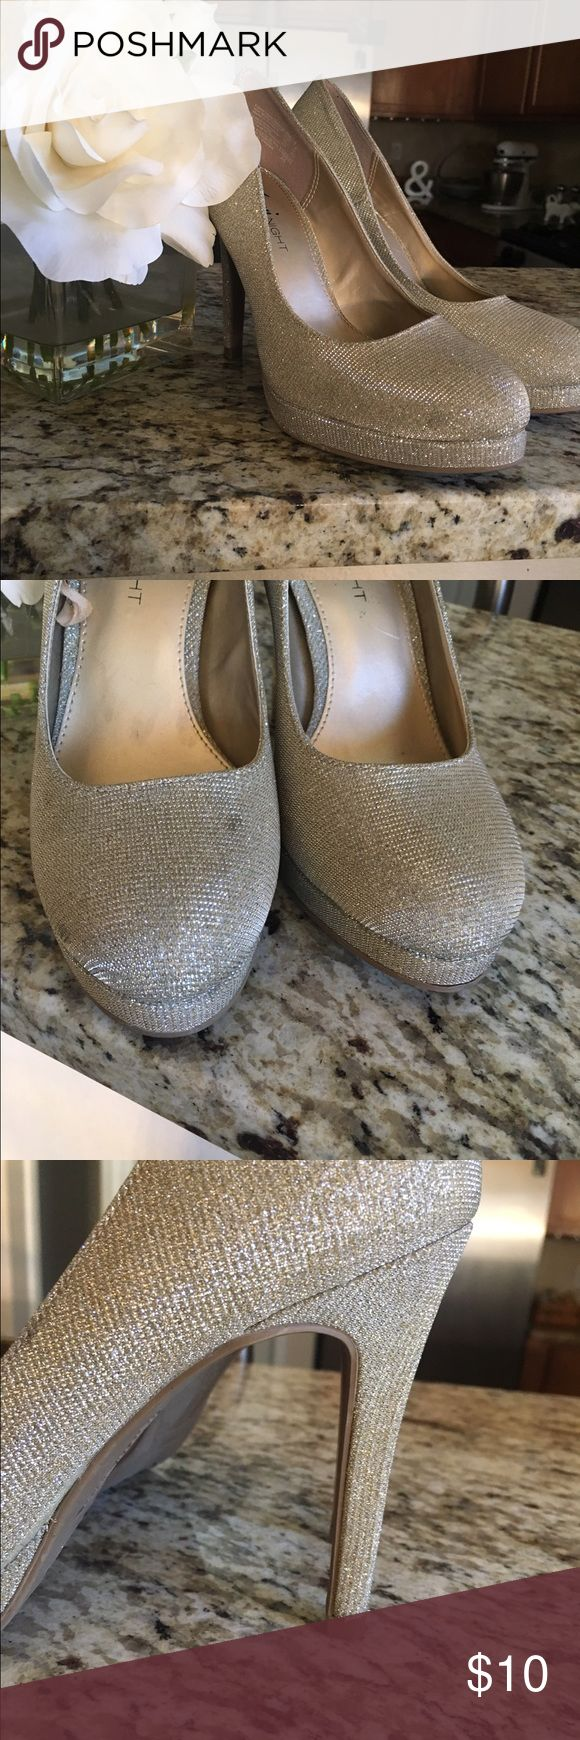 Glitter heels Champagne colored heels. Wore once for a wedding! Small stain on front of shoe FIONI Clothing Shoes Heels